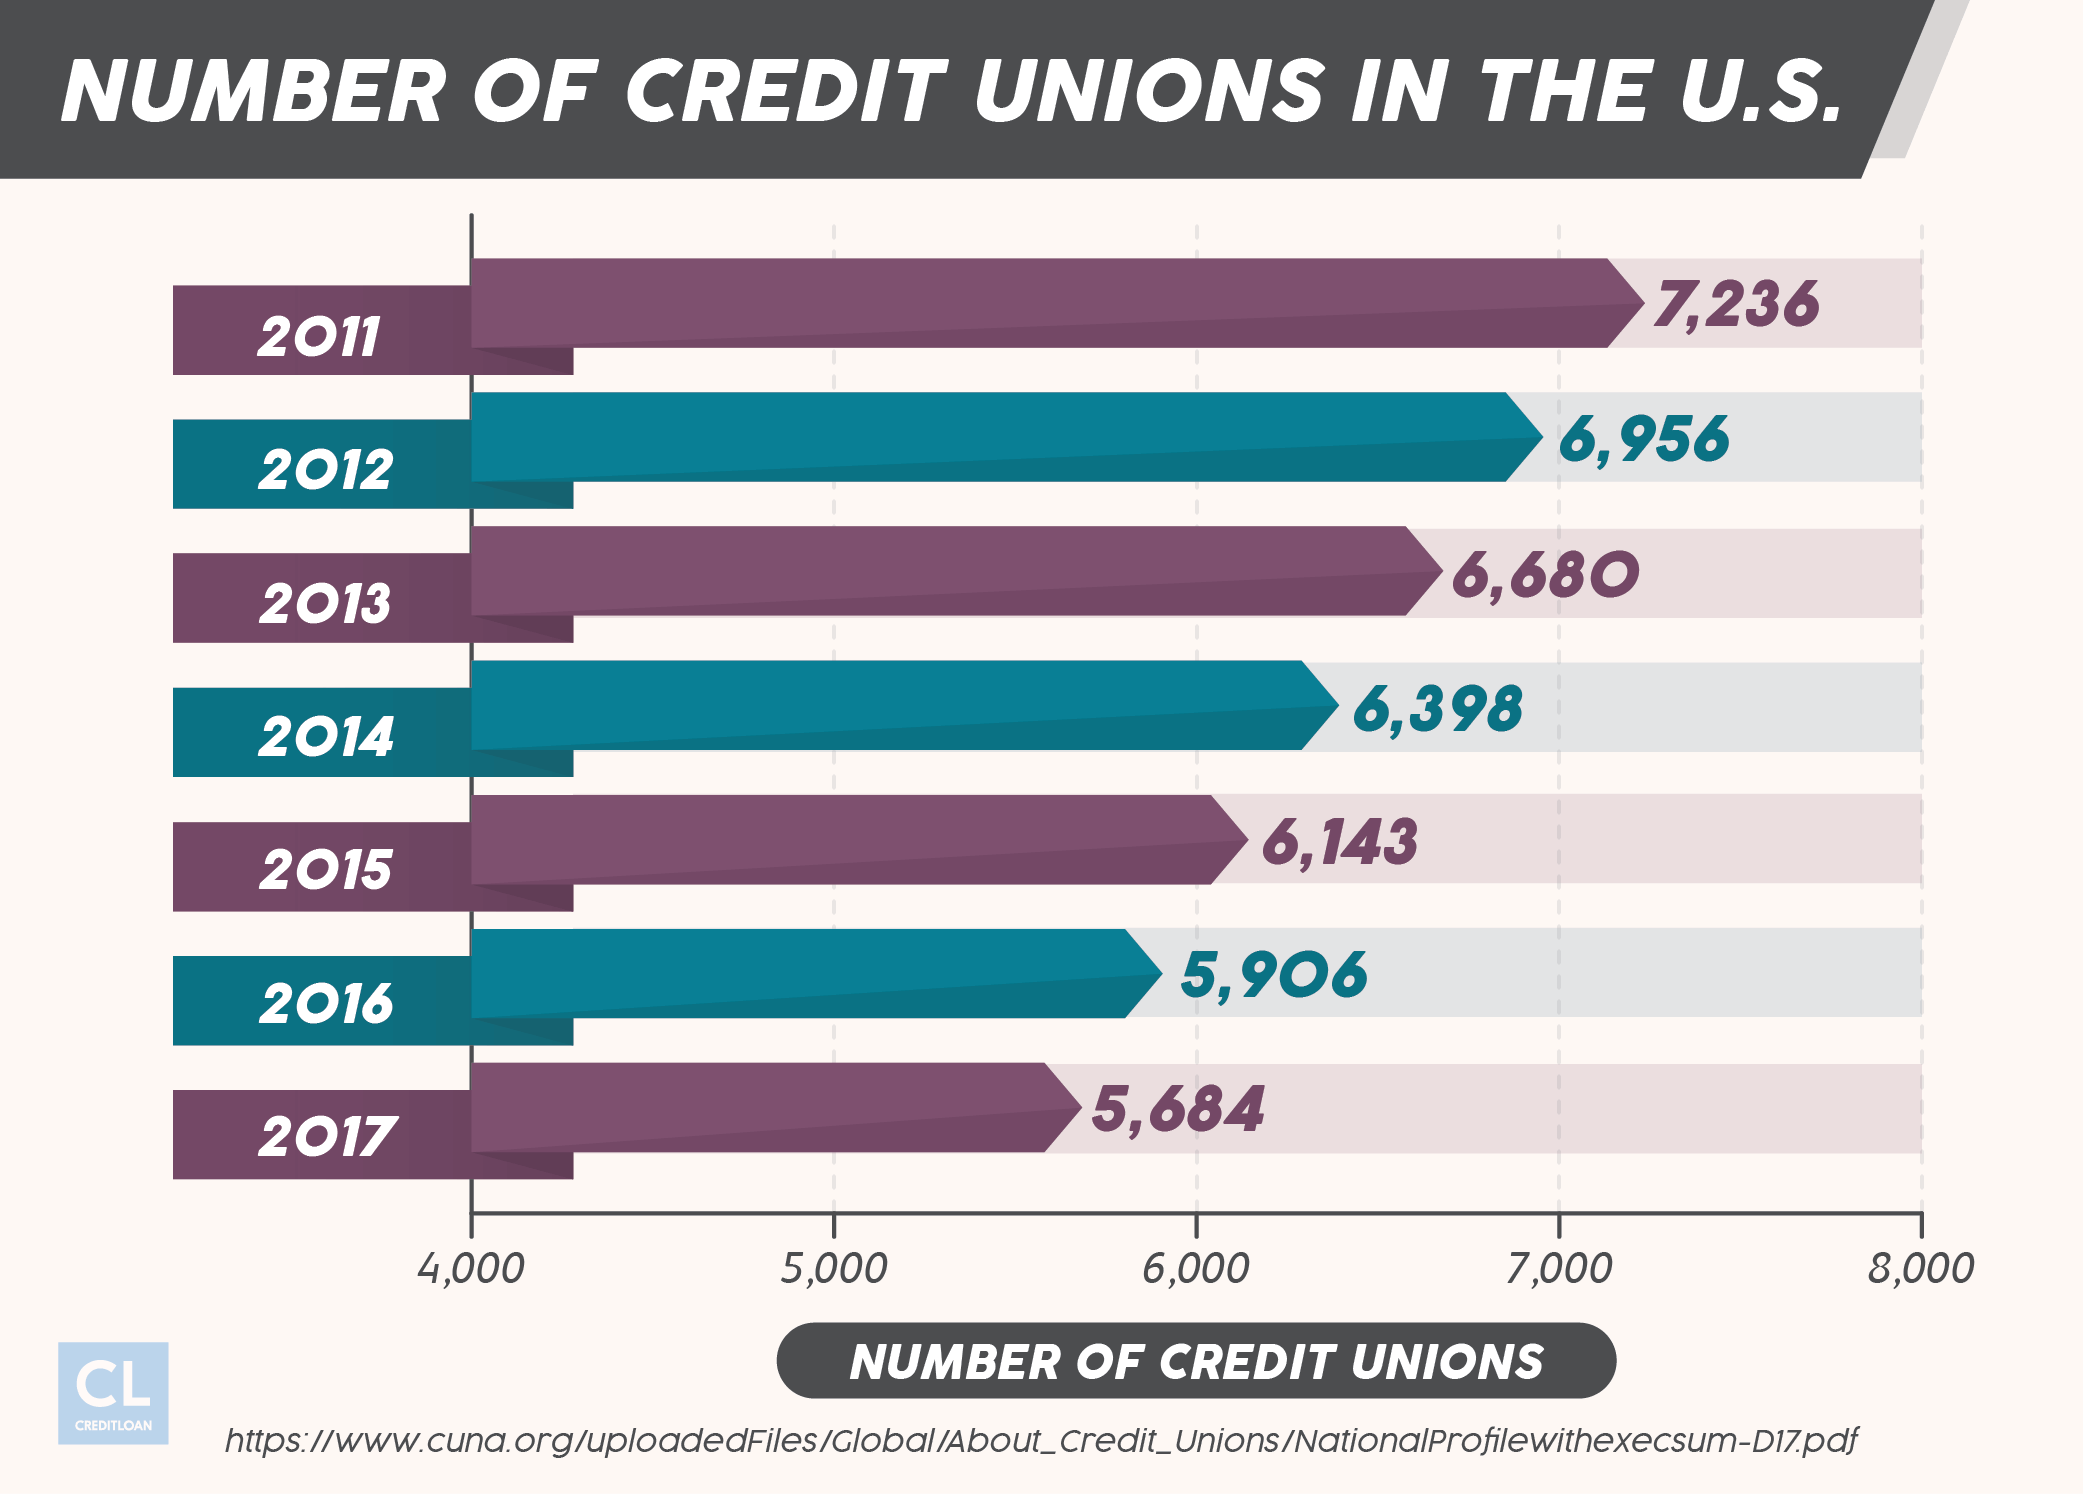 Number of Credit Unions in the U.S. 2011-2017